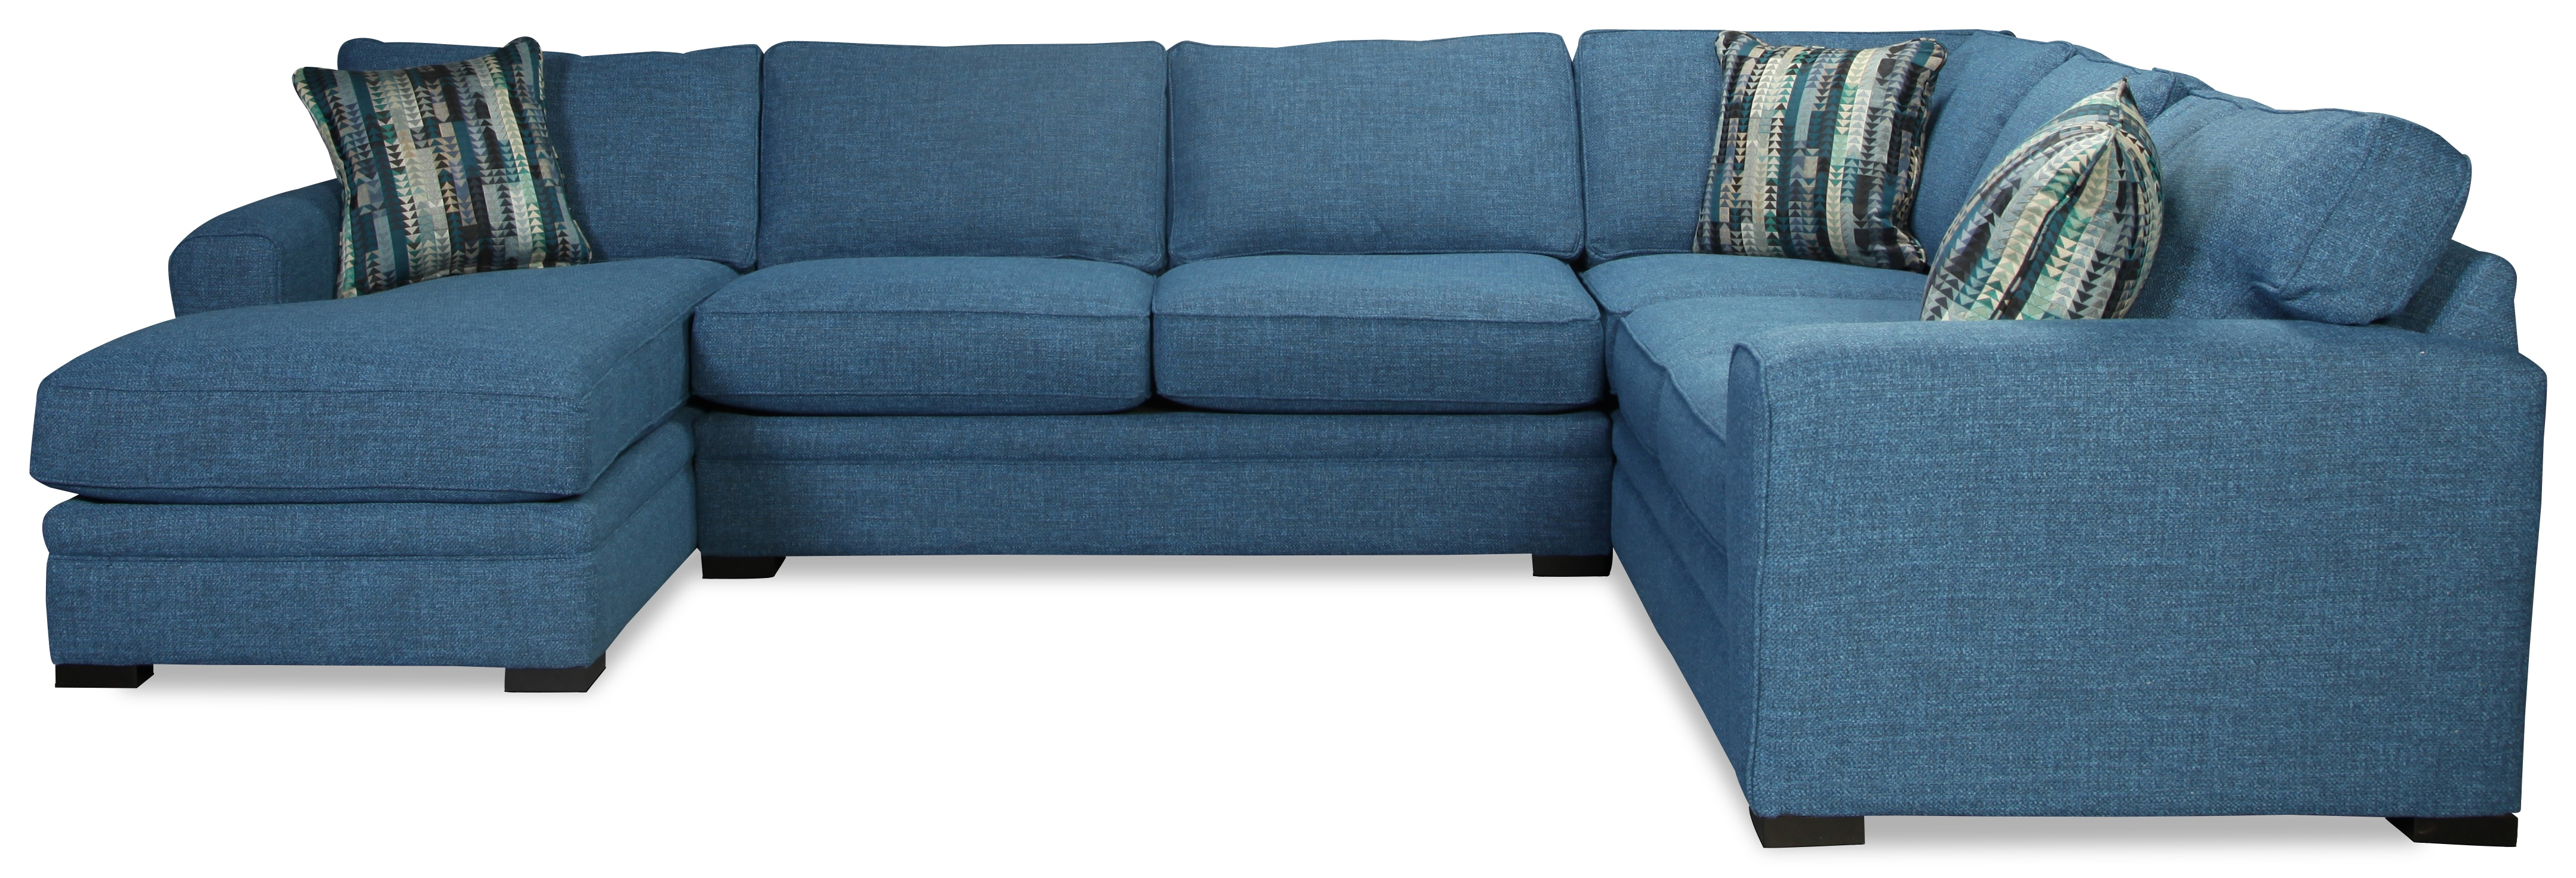 Lybrook 3pc sectional levin furniture for Levin furniture sectional sofa